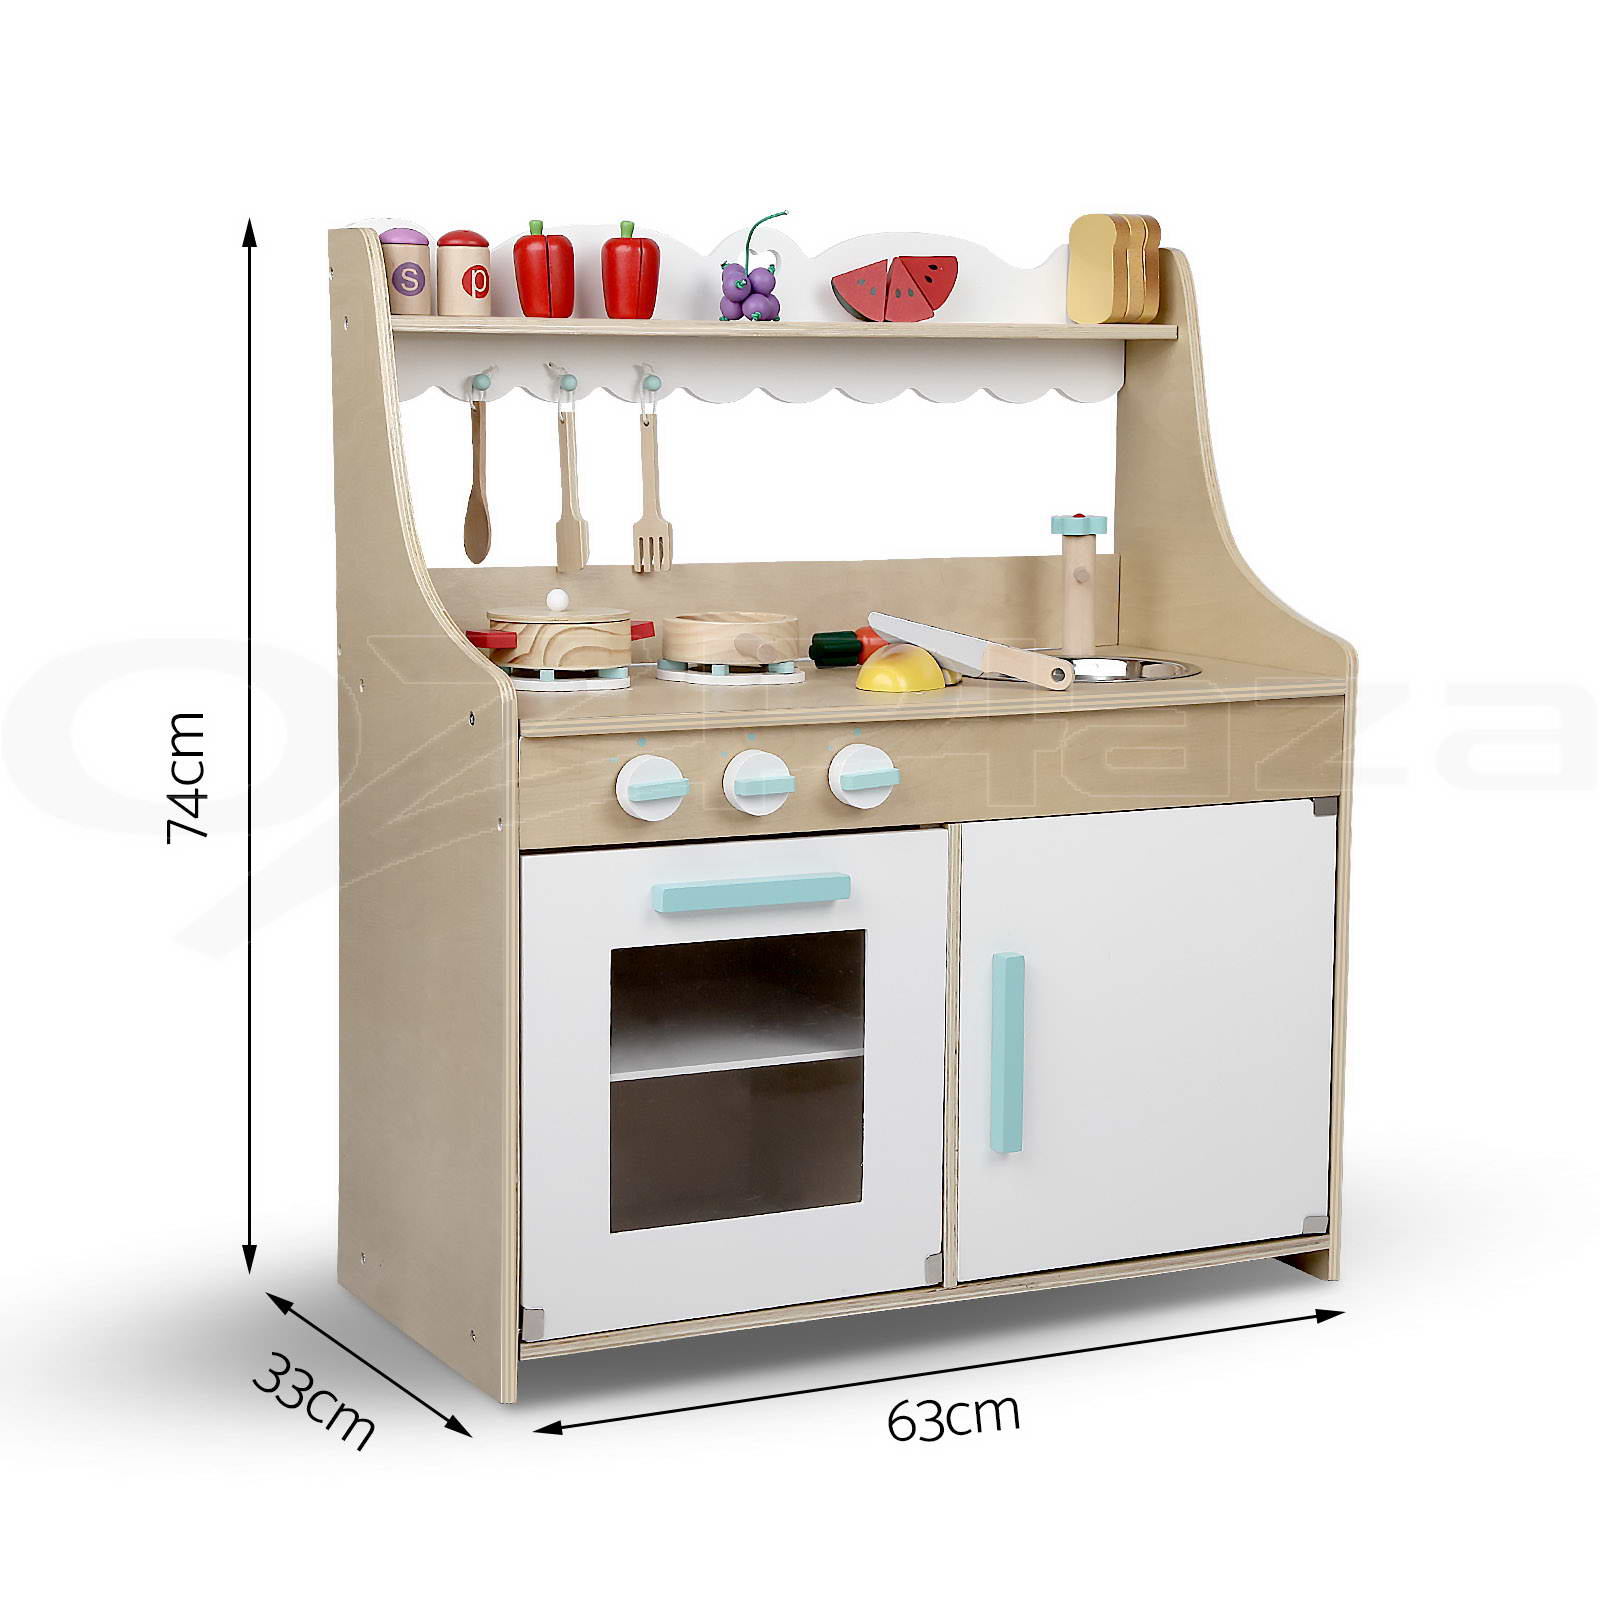 kids wooden pretend play kitchen set toy toddlers market home children tool ebay. Black Bedroom Furniture Sets. Home Design Ideas